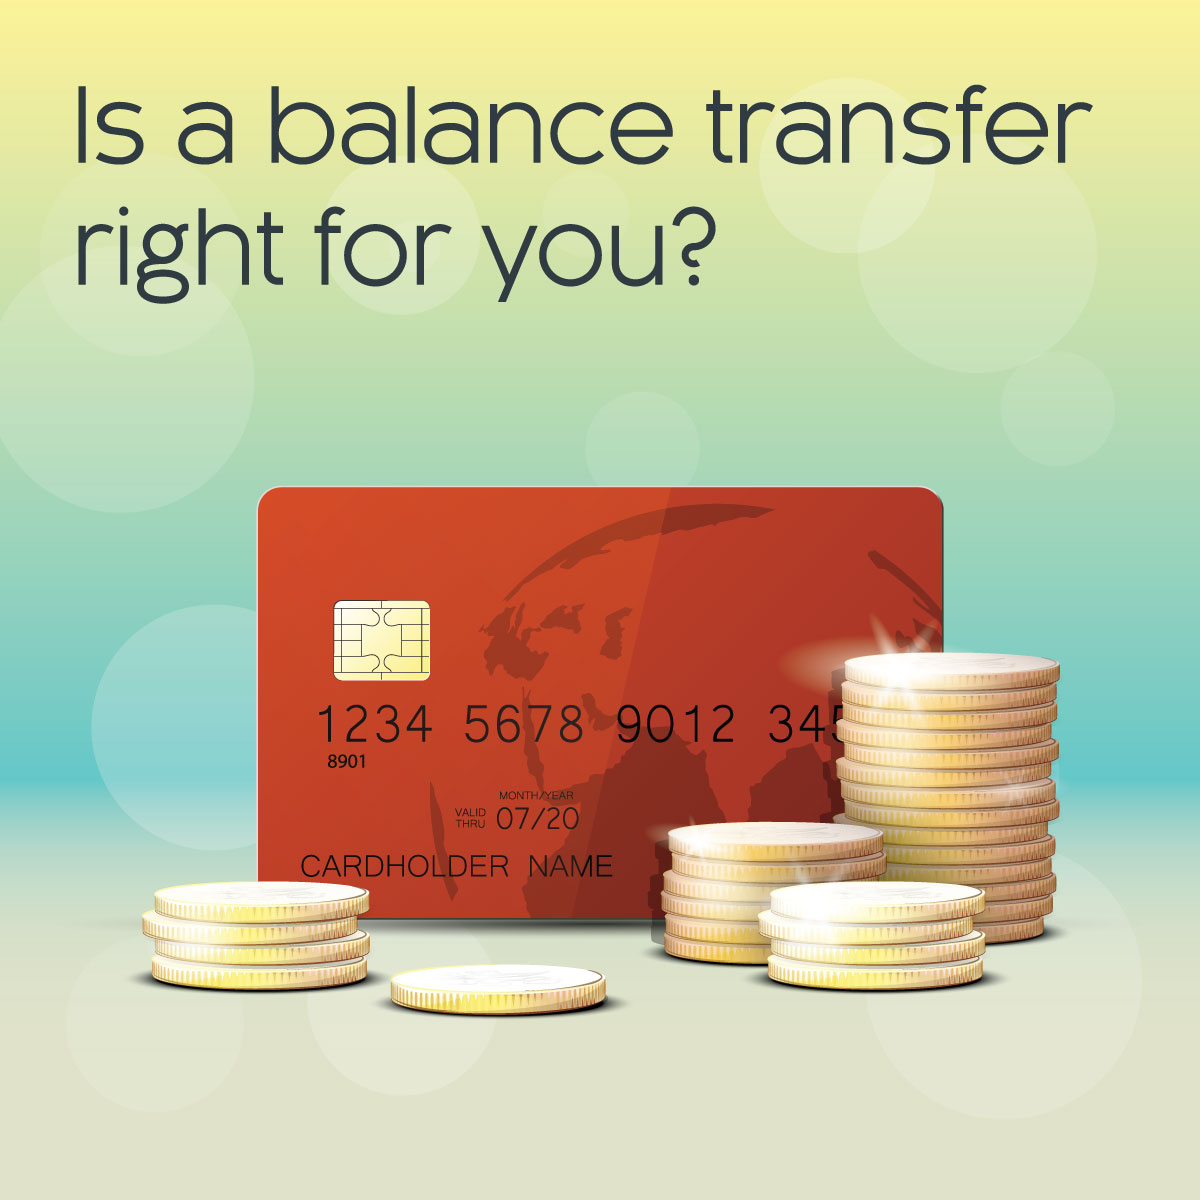 Should I Make a Balance Transfer?